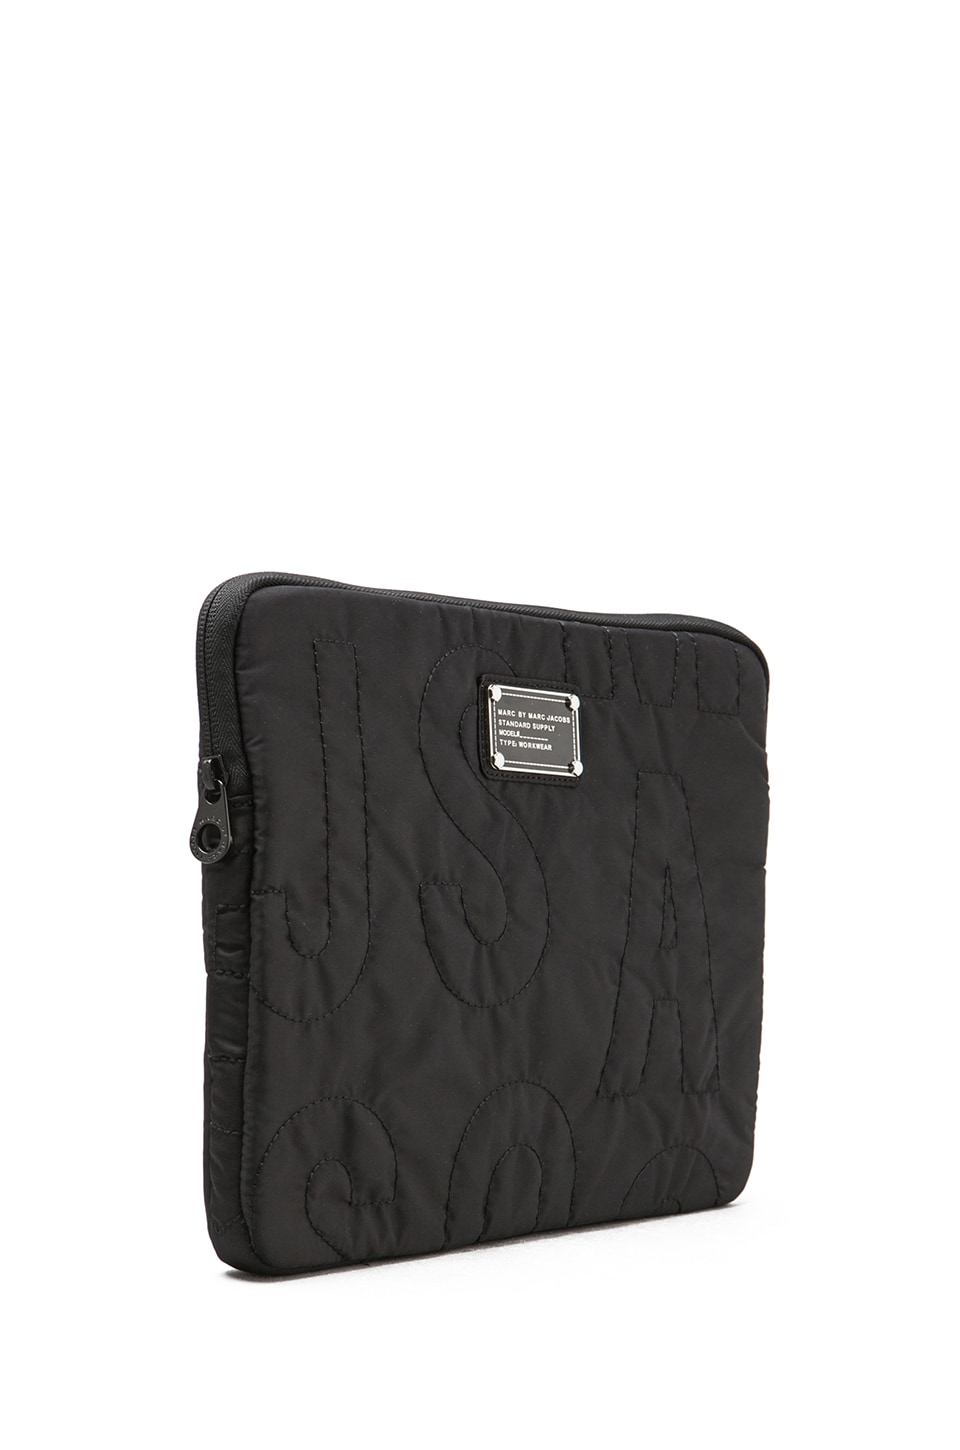 "Marc by Marc Jacobs Pretty Nylon 13"" Computer Case in Black"